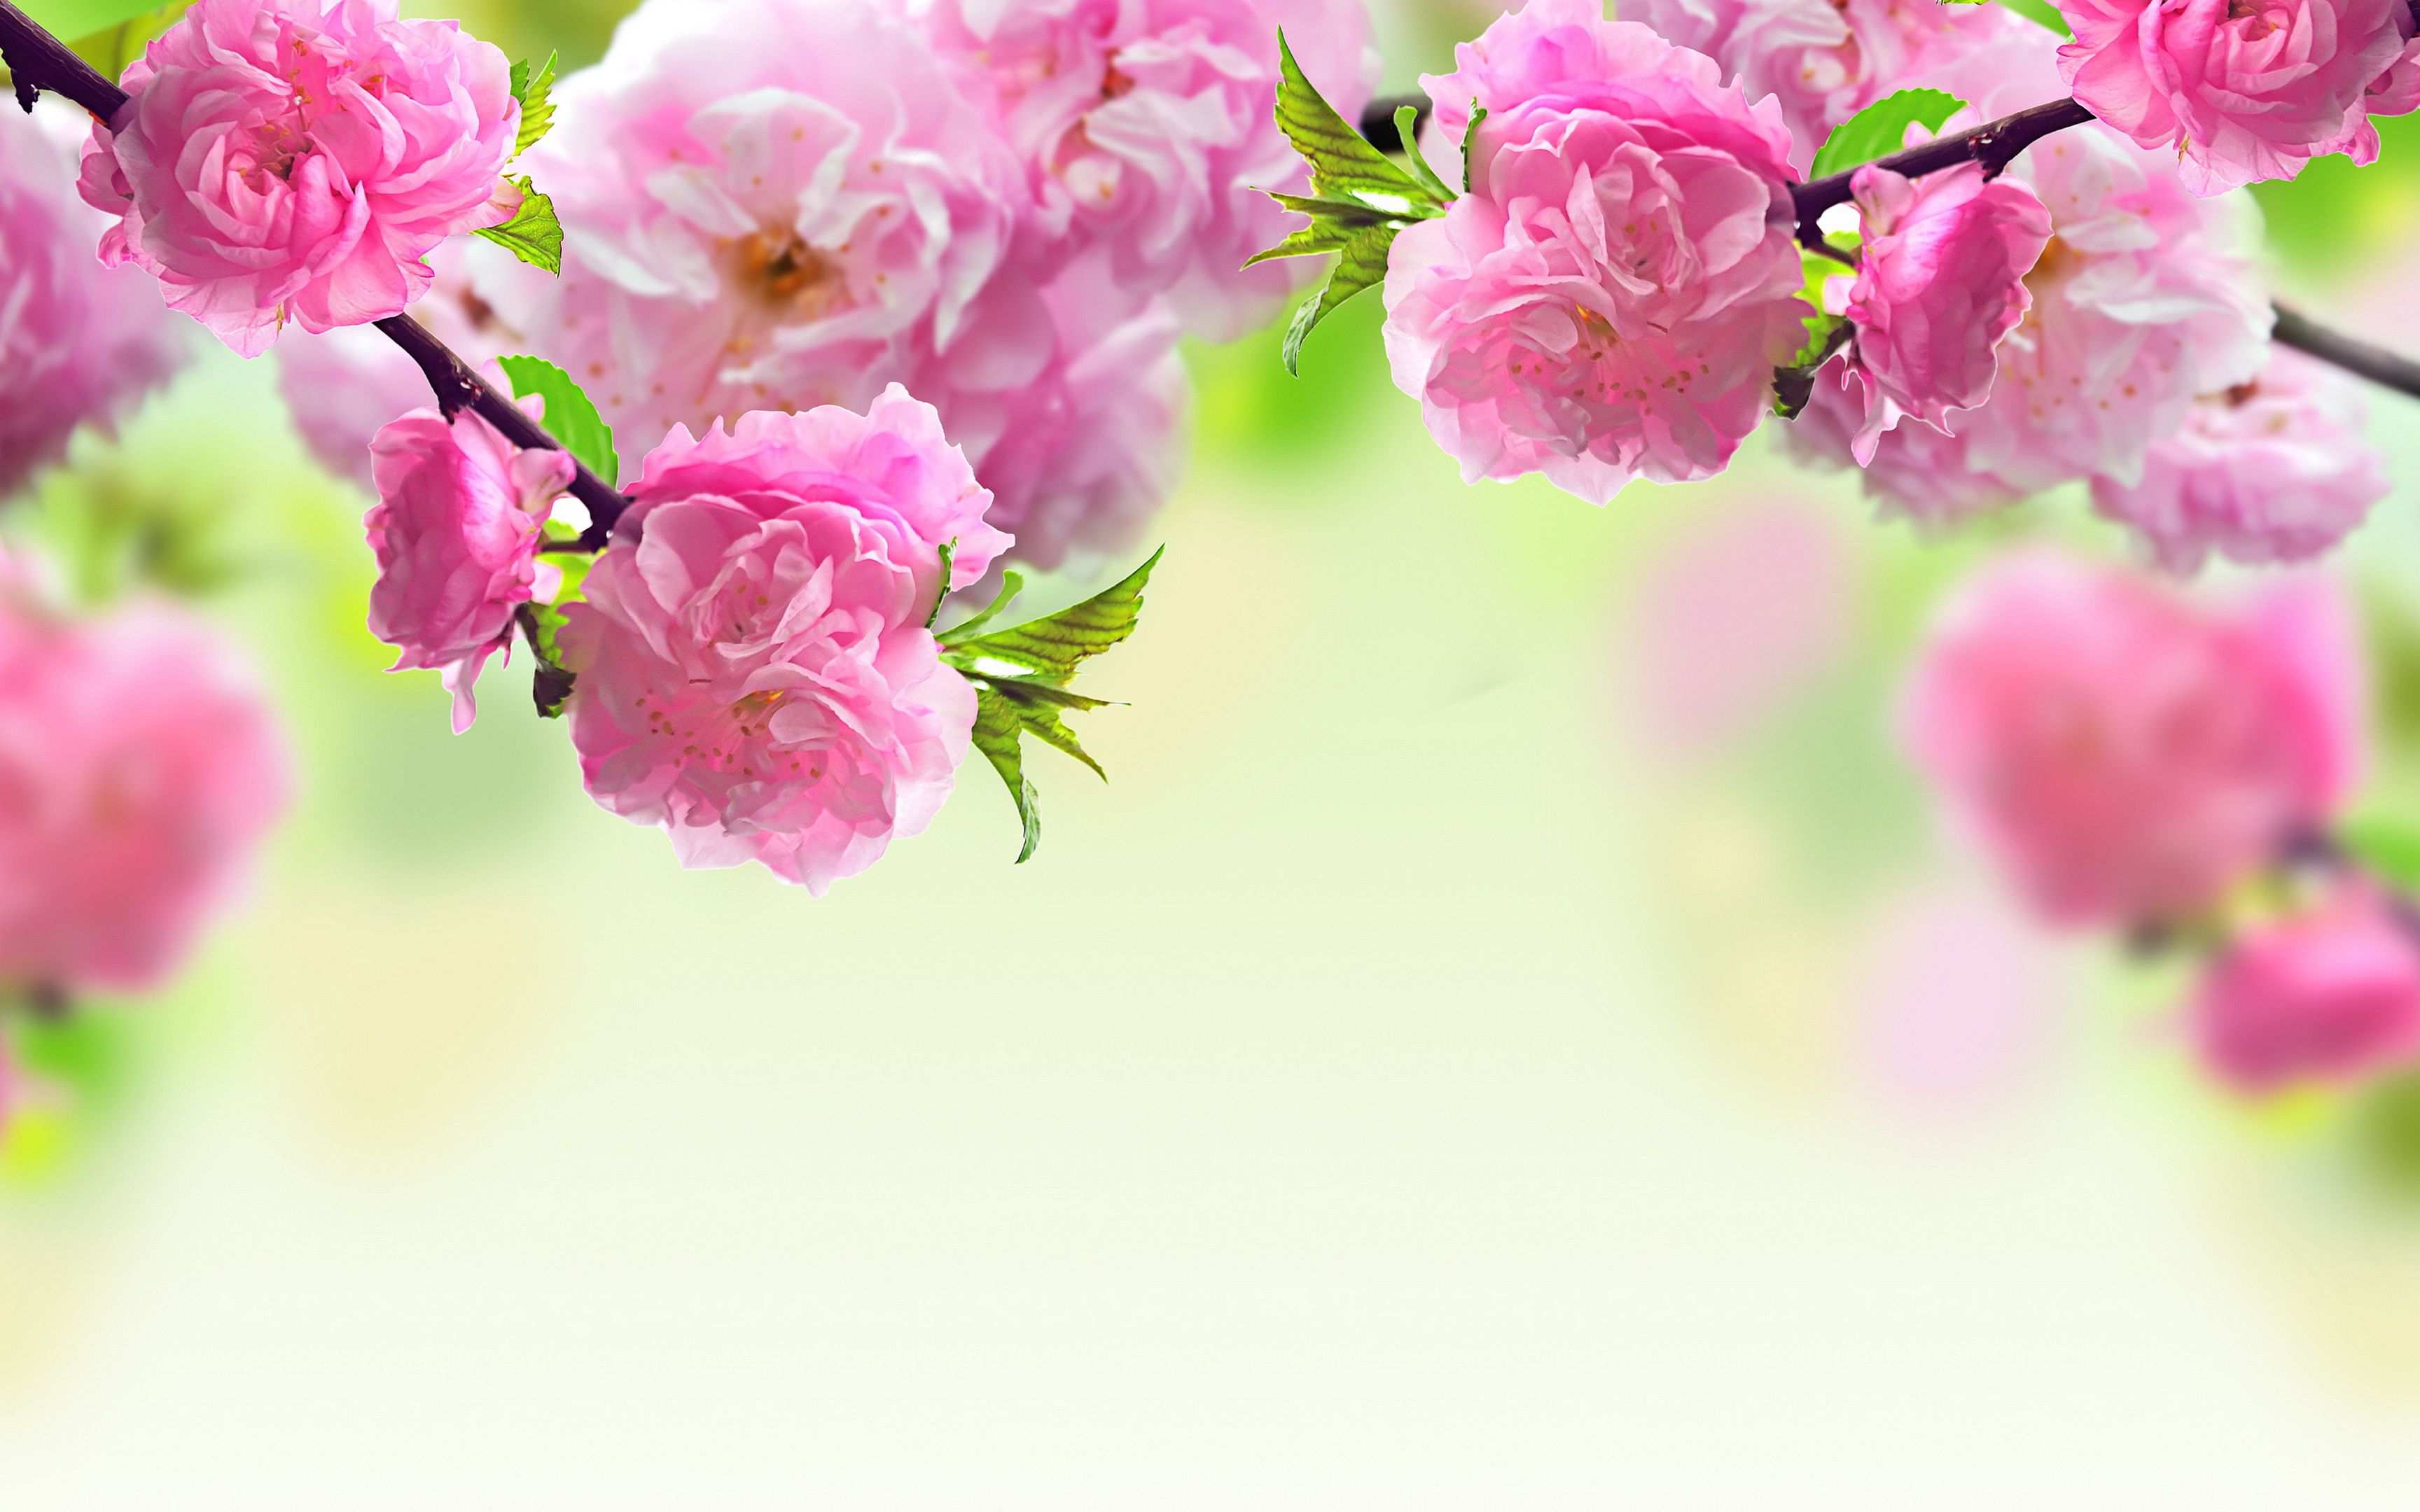 Flower Images Wallpapers